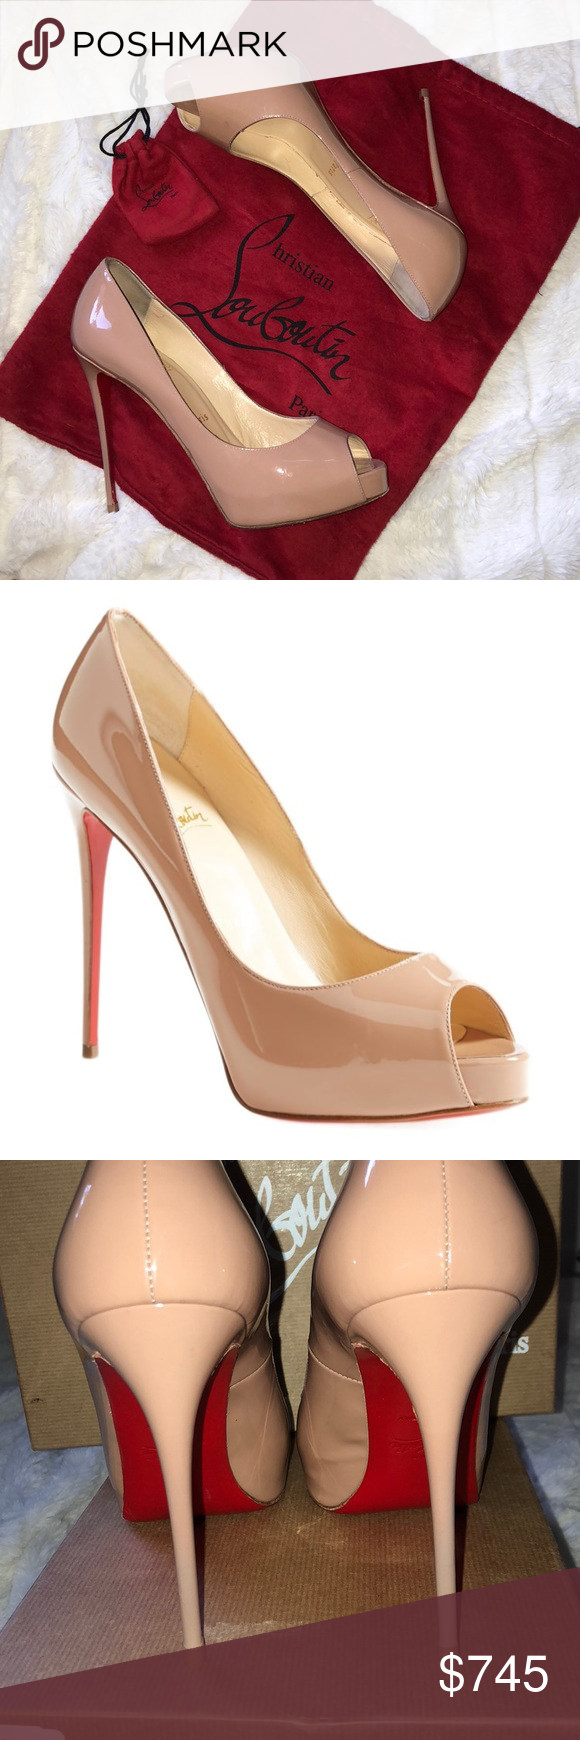 competitive price 8dc4d 6bcf6 AUTHENTIC-LOUBOUTIN-New Very Prive 100% AUTHENTIC CHRISTIAN ...